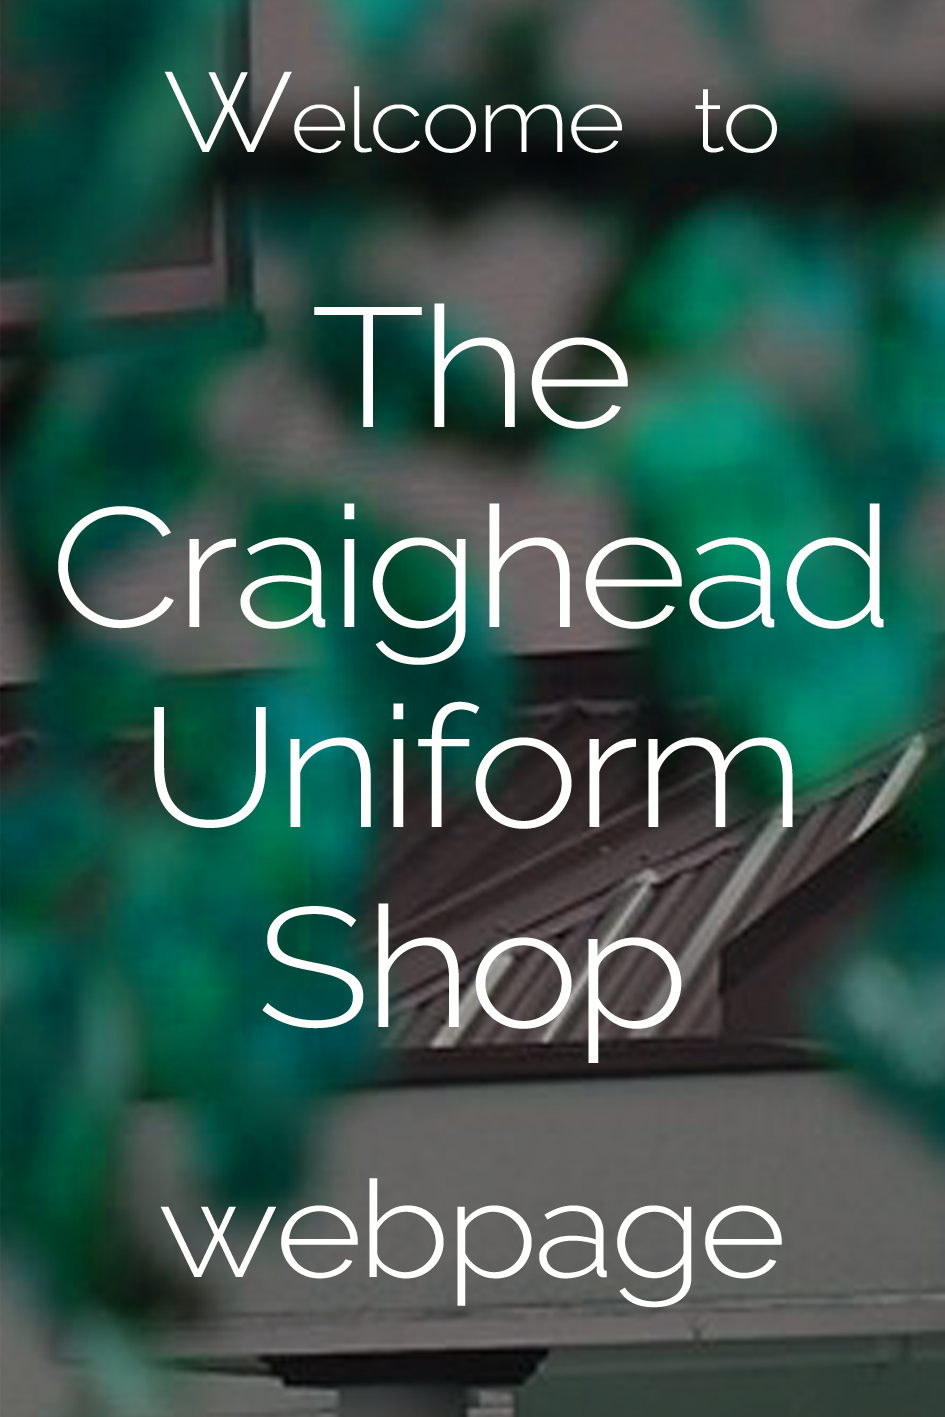 Uniform shop welcome5